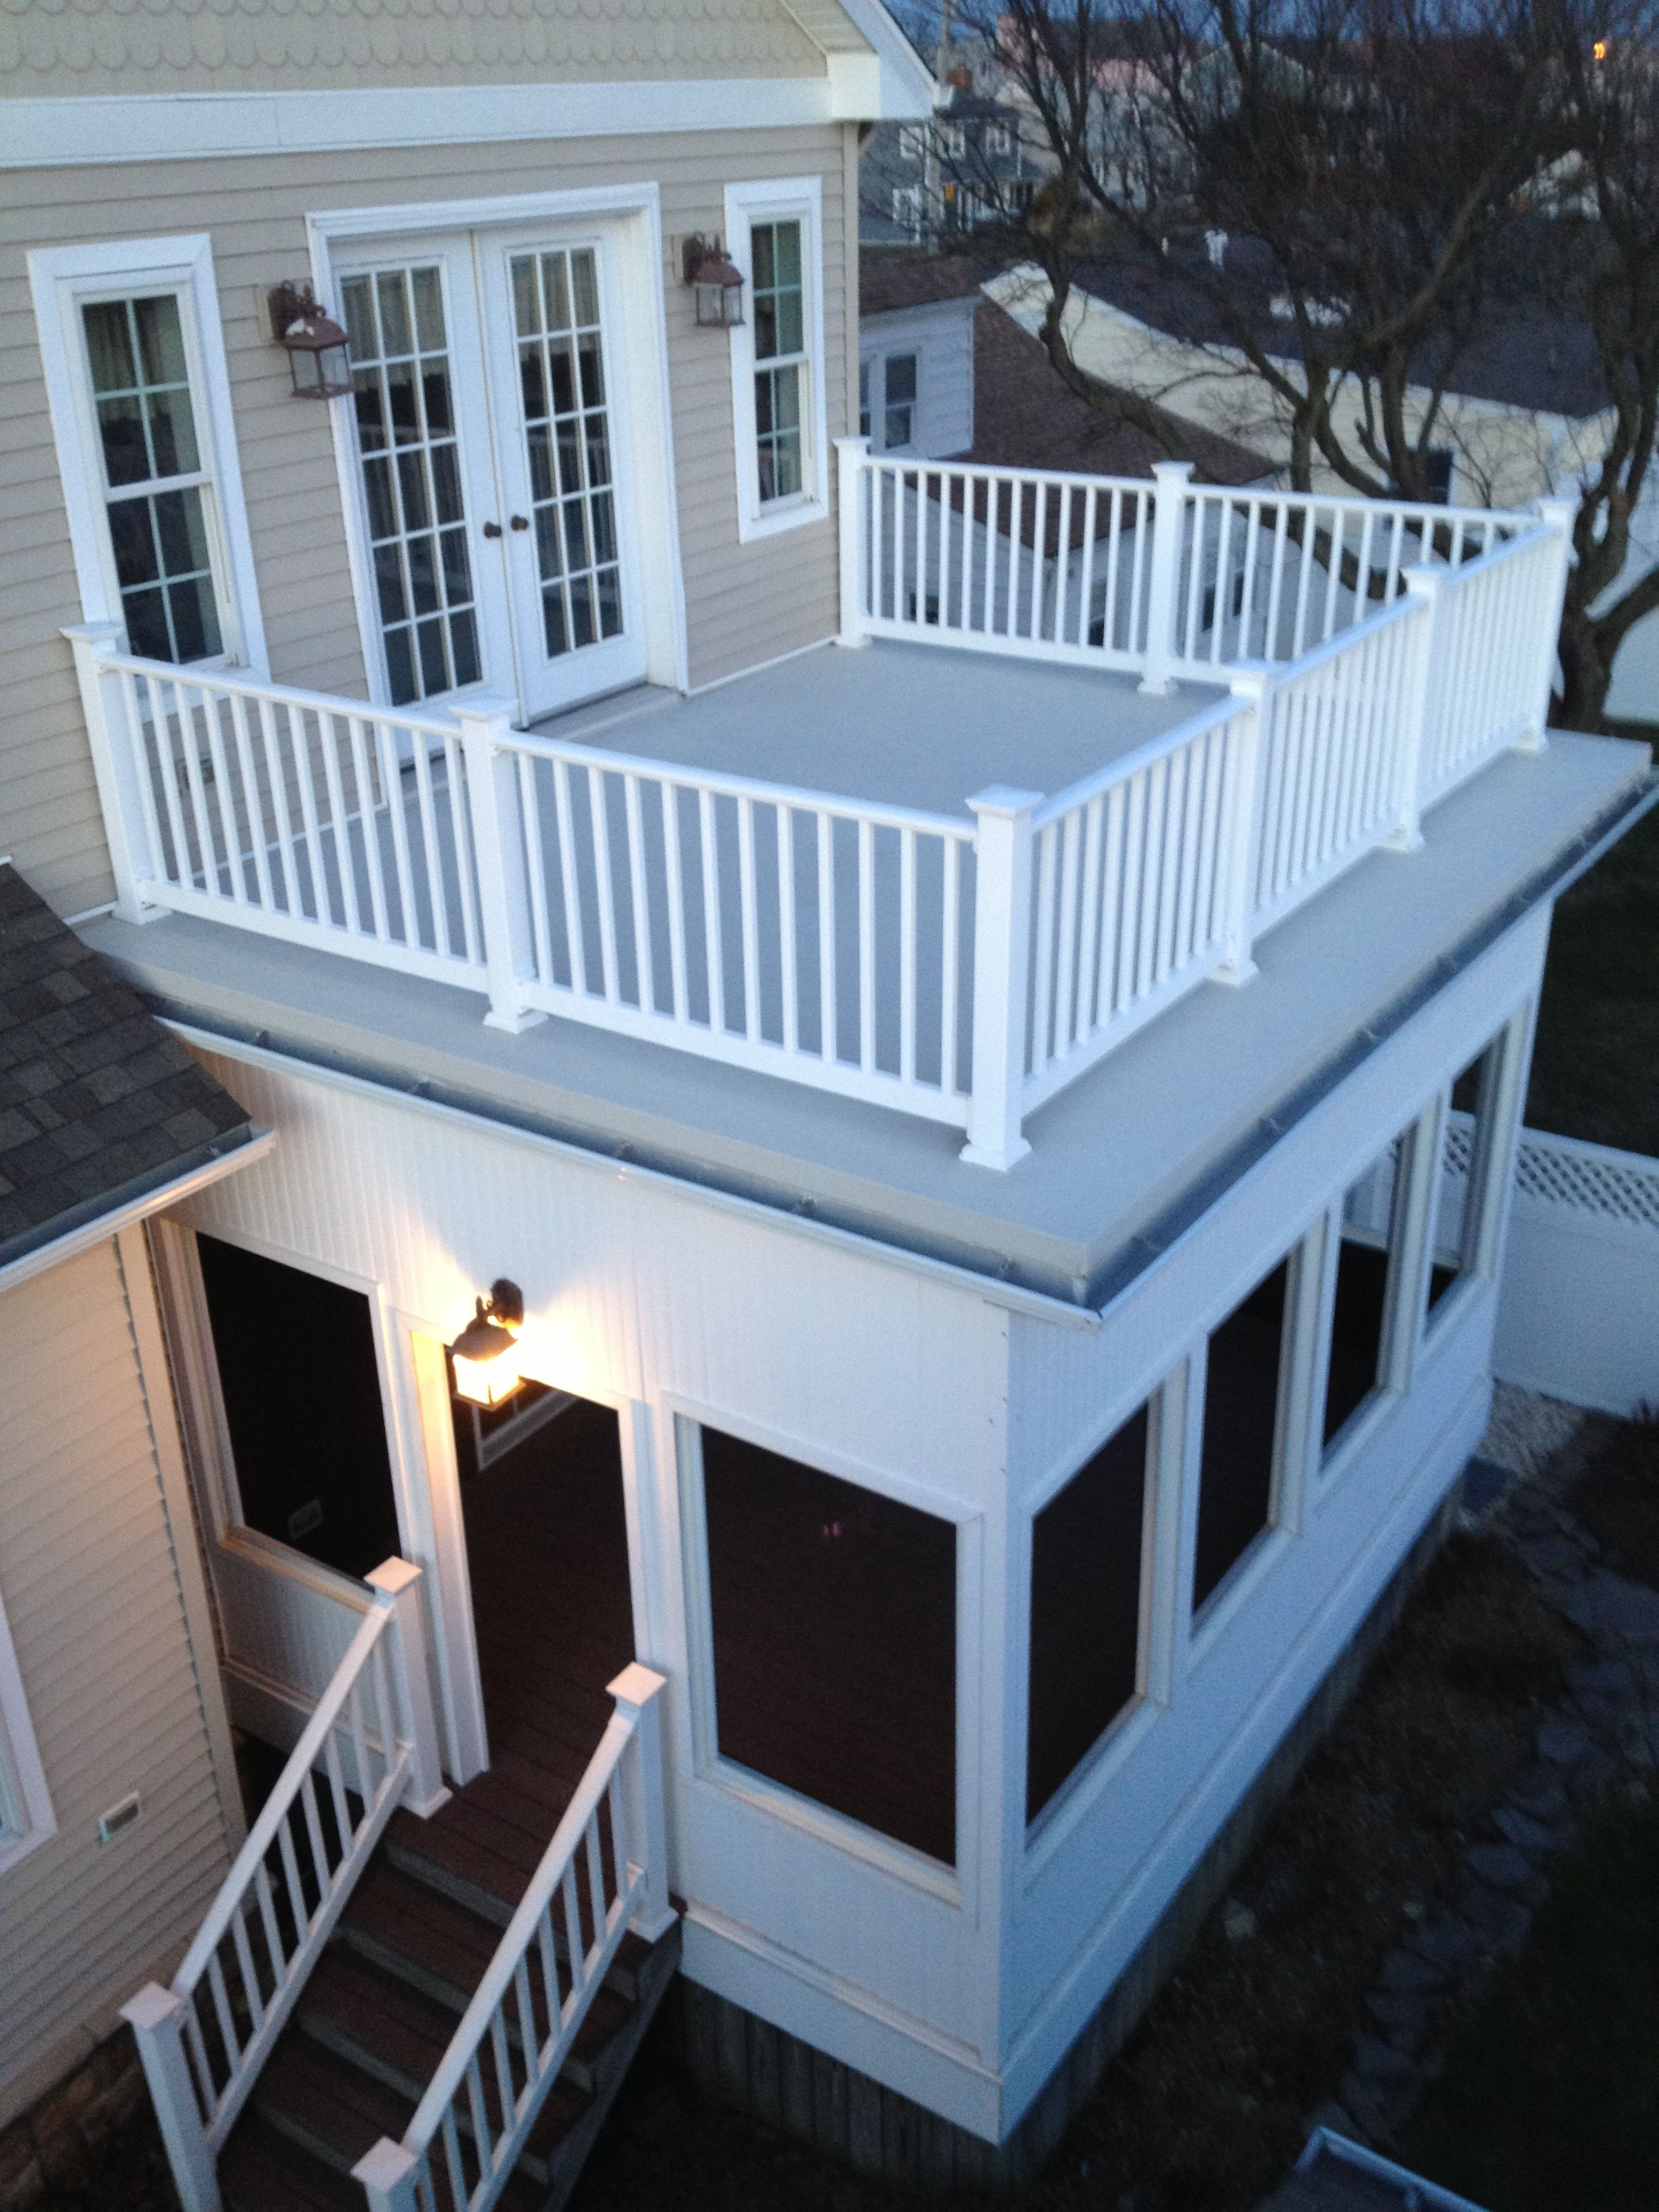 Flat Roof With Railings And A Screened In Porch Porch Design Decks And Porches Screened Porch Designs